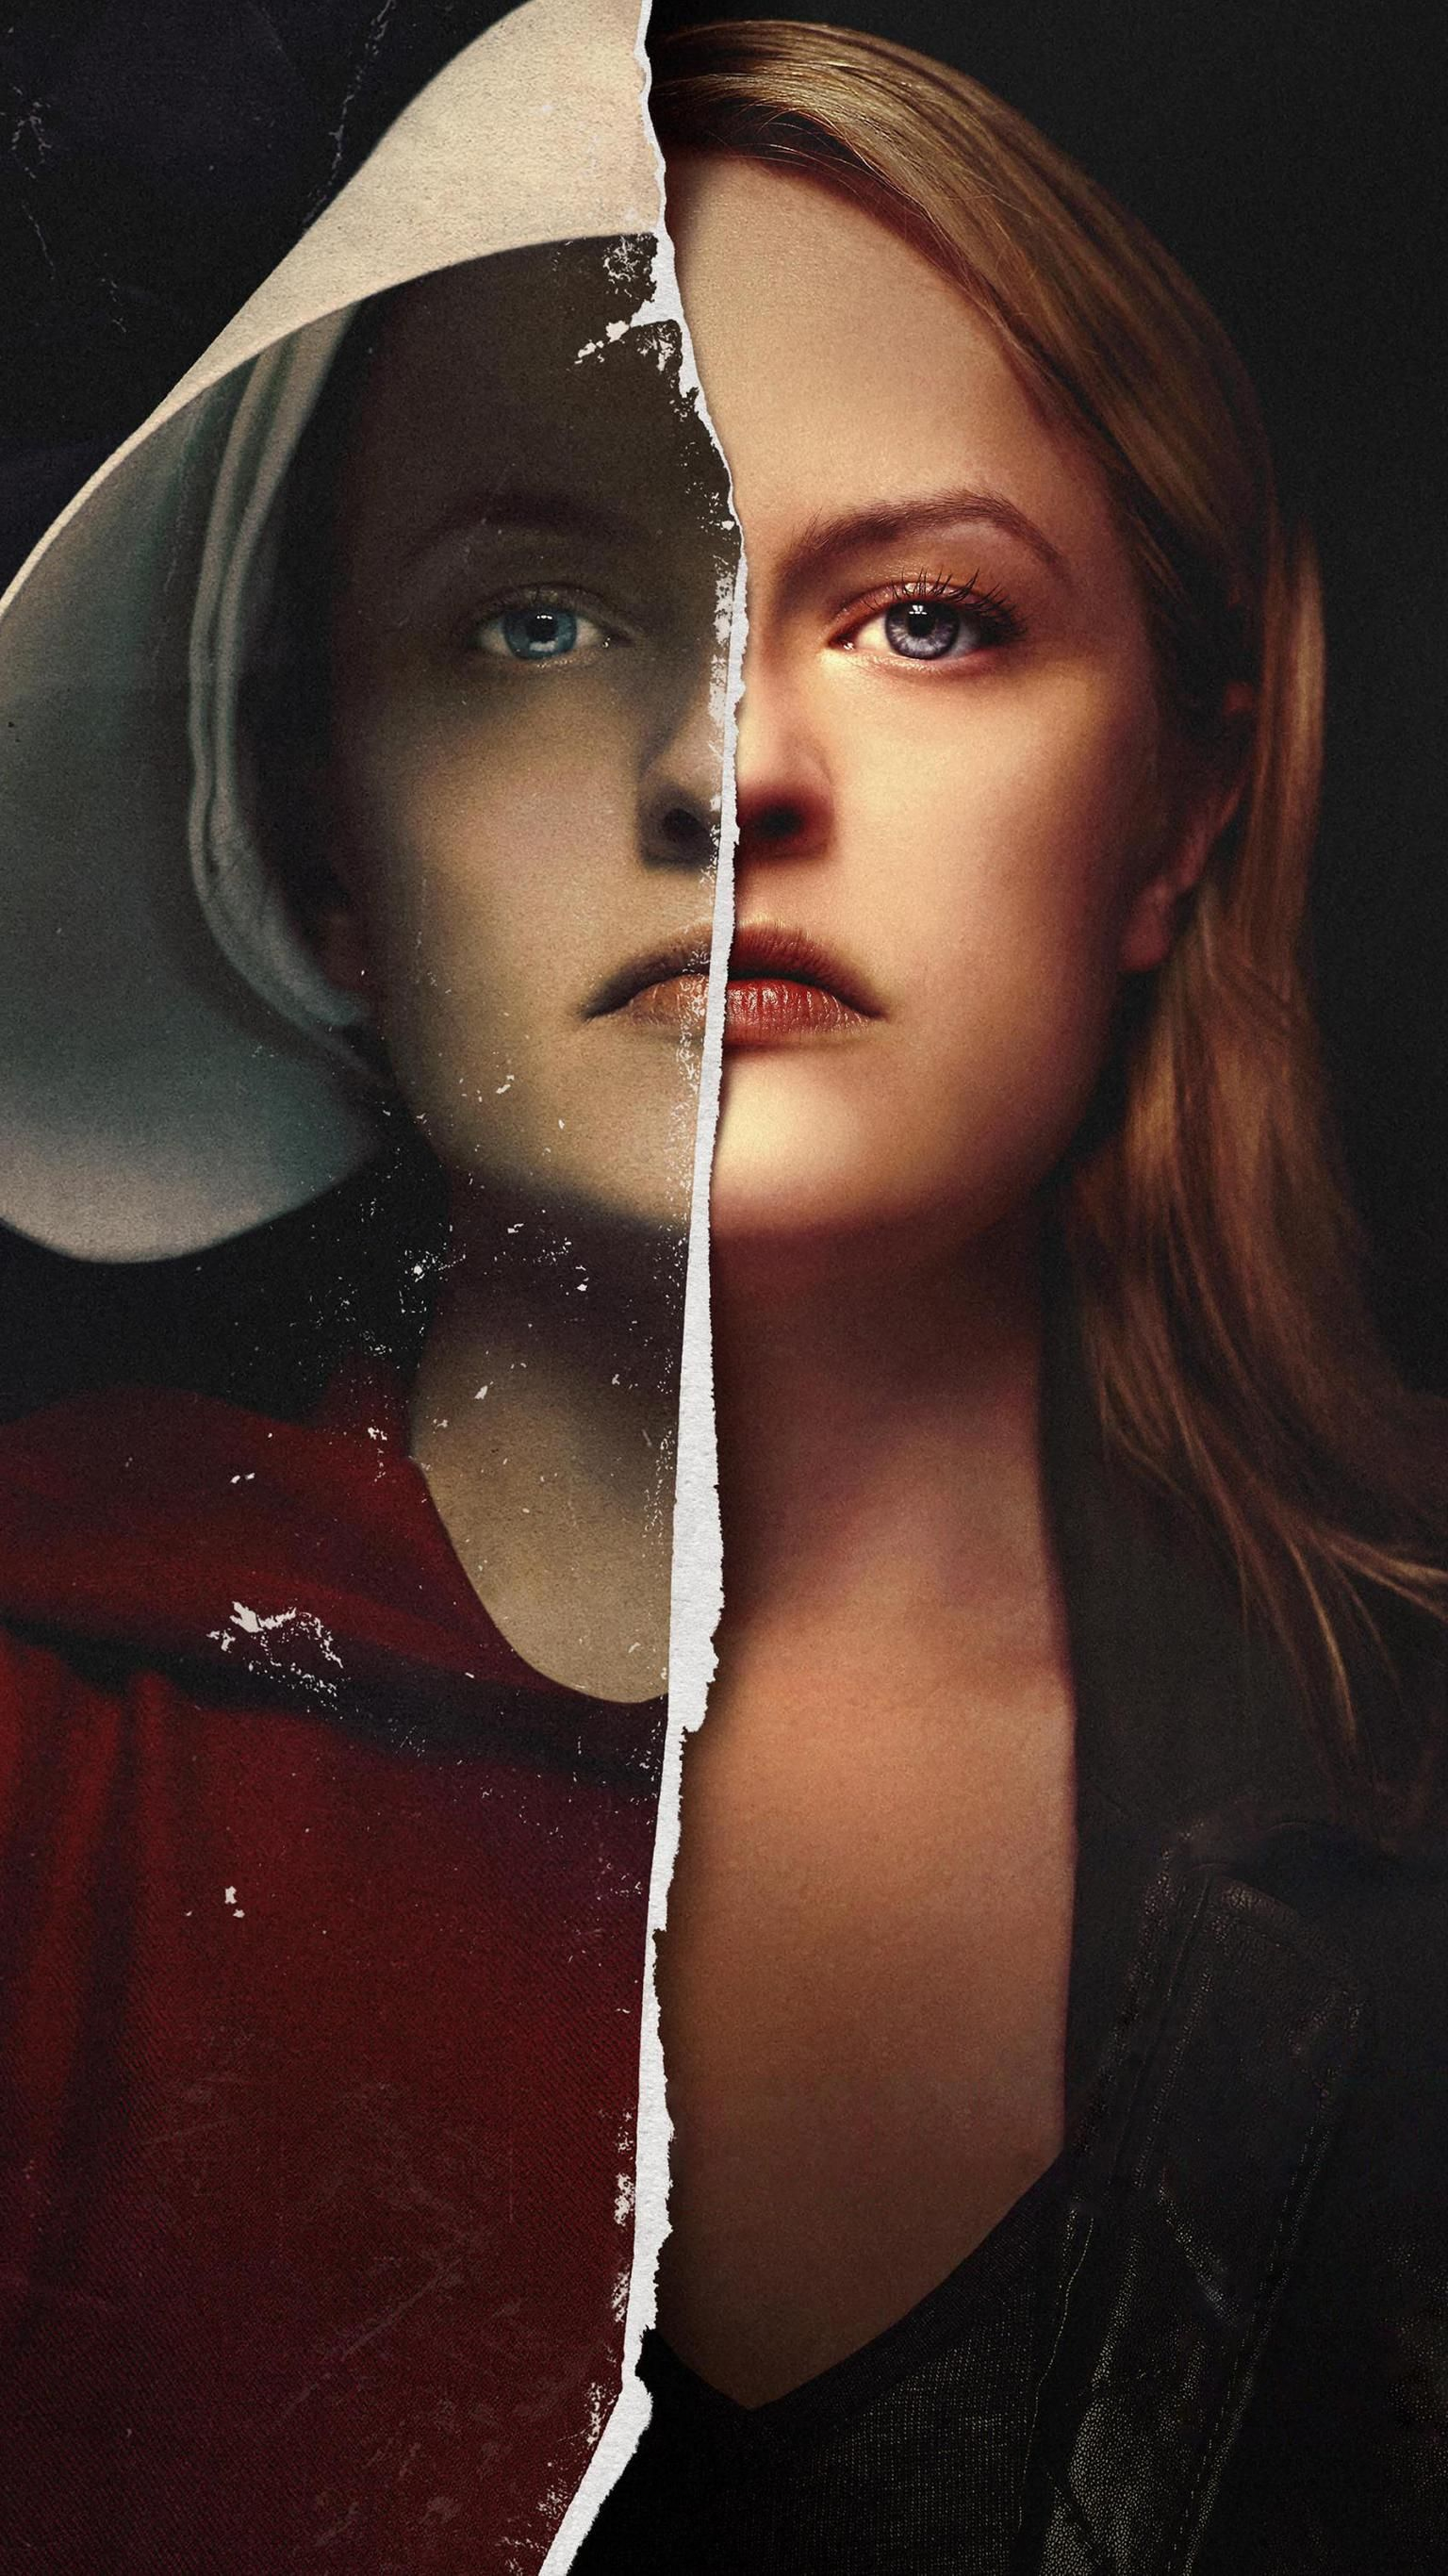 The Handmaids Tale Phone Wallpaper Movie Poster In 2019